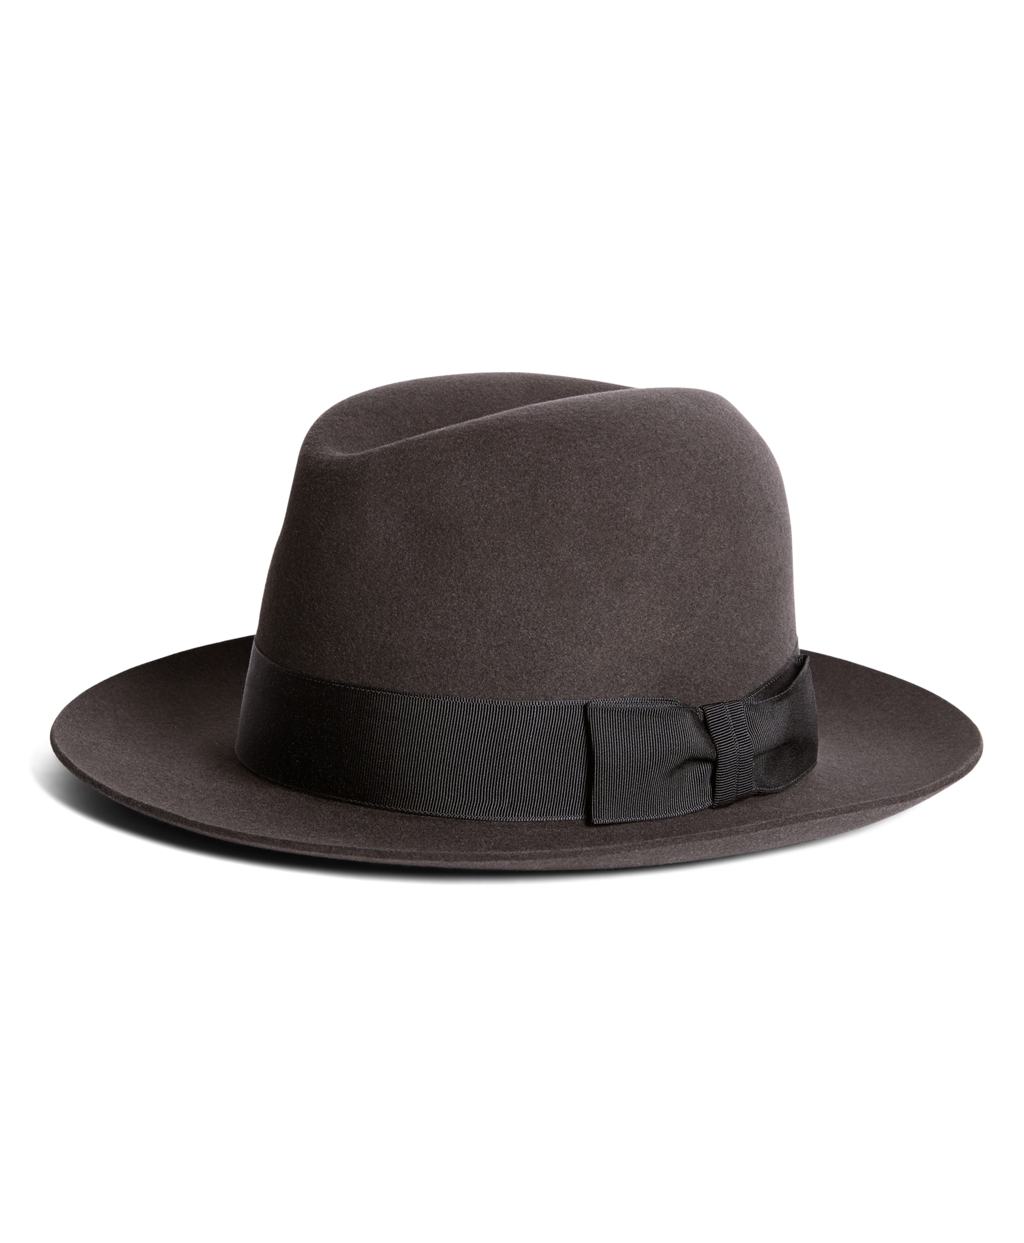 1960s – 70s Style Men's Hats Brooks Brothers Mens Lock And Co. Chelsea Dark Grey Fedora $438.00 AT vintagedancer.com